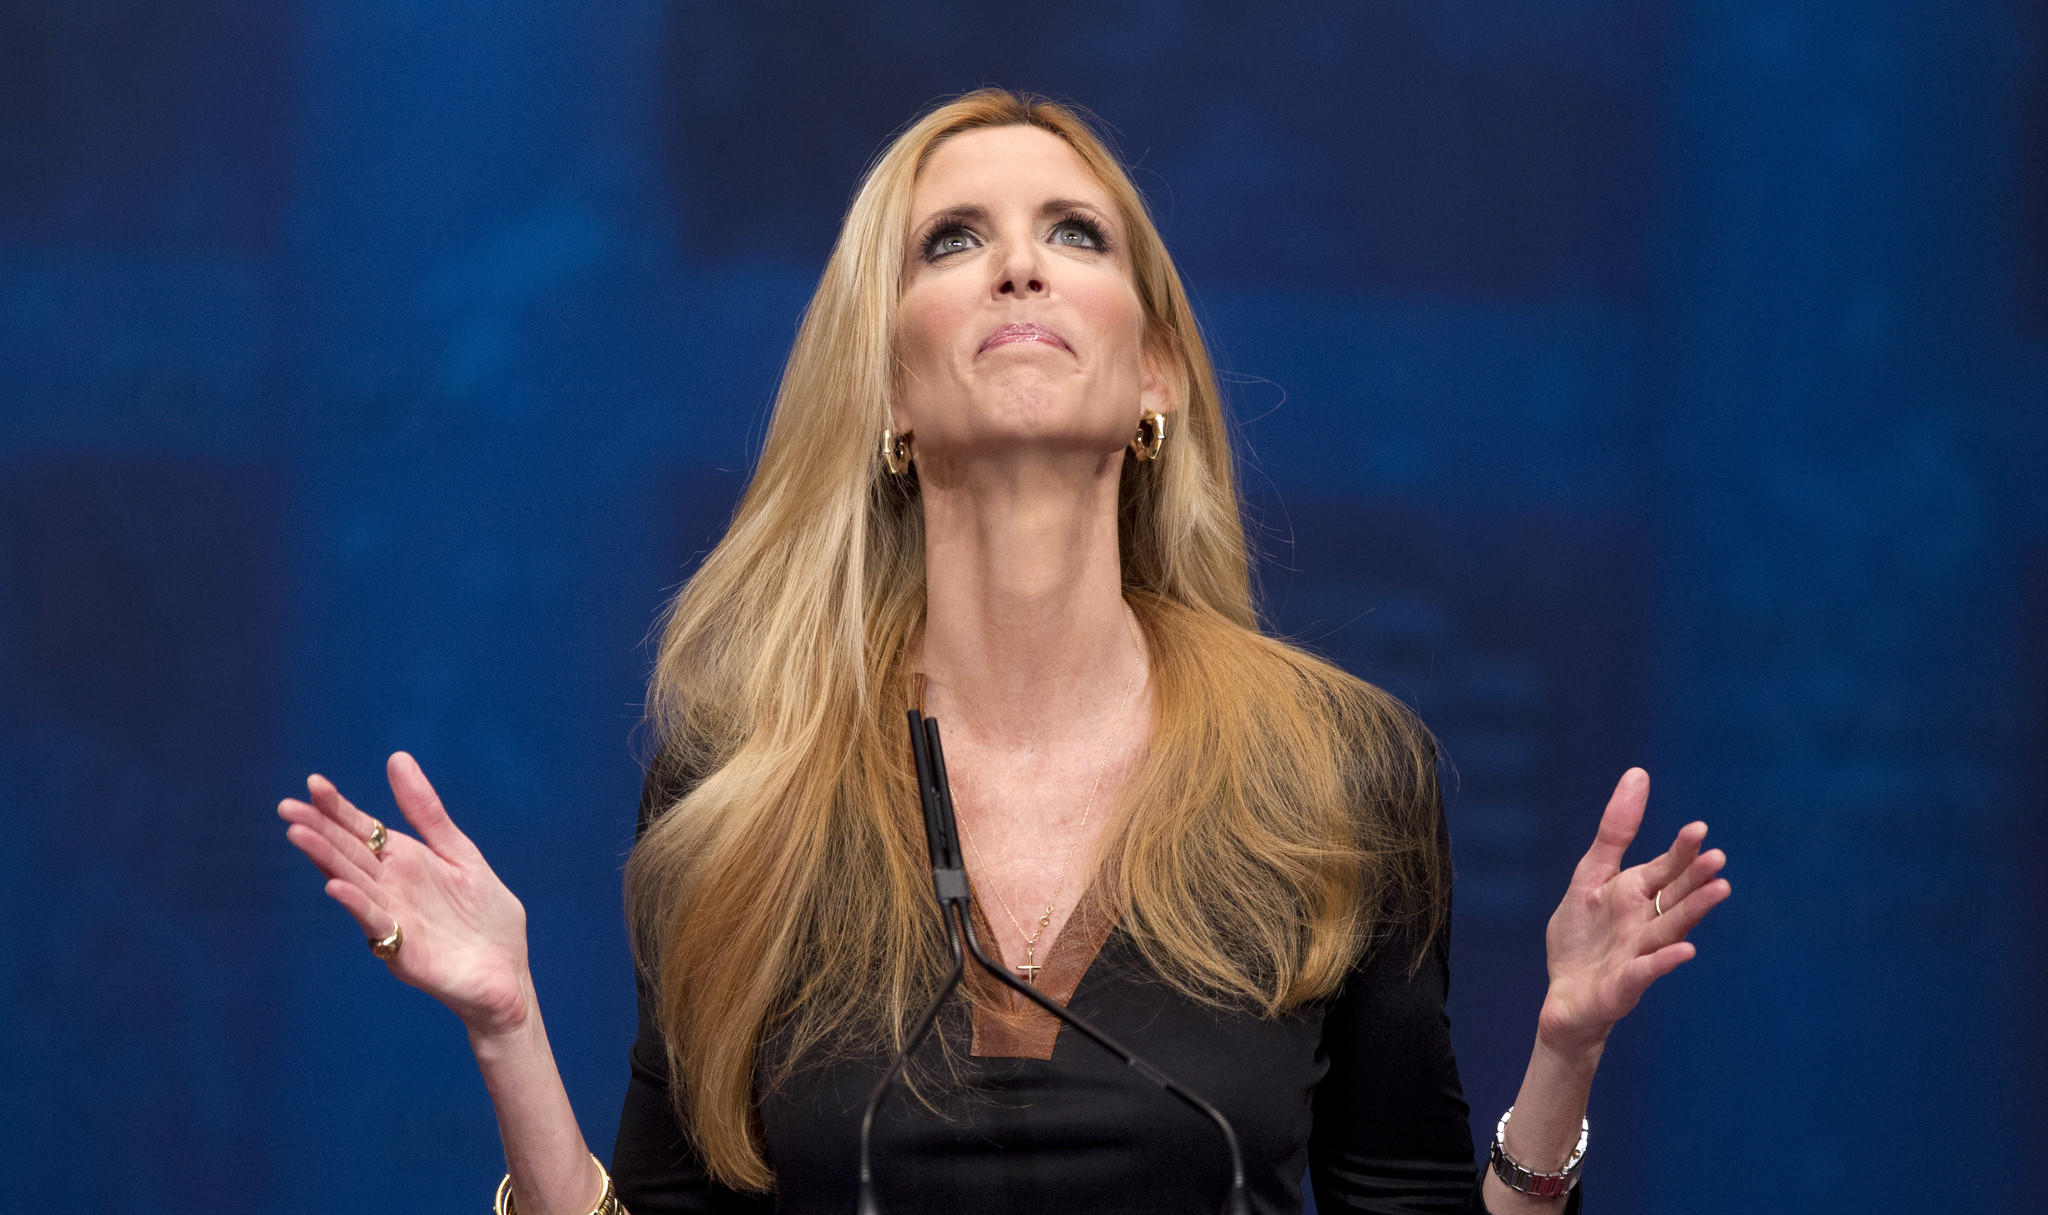 Ann Coulter wages a social media war on Delta -- but the airline is unimpressed  https://t.co/XBXsTBV0S9 https://t.co/TlsgrtaQ9J